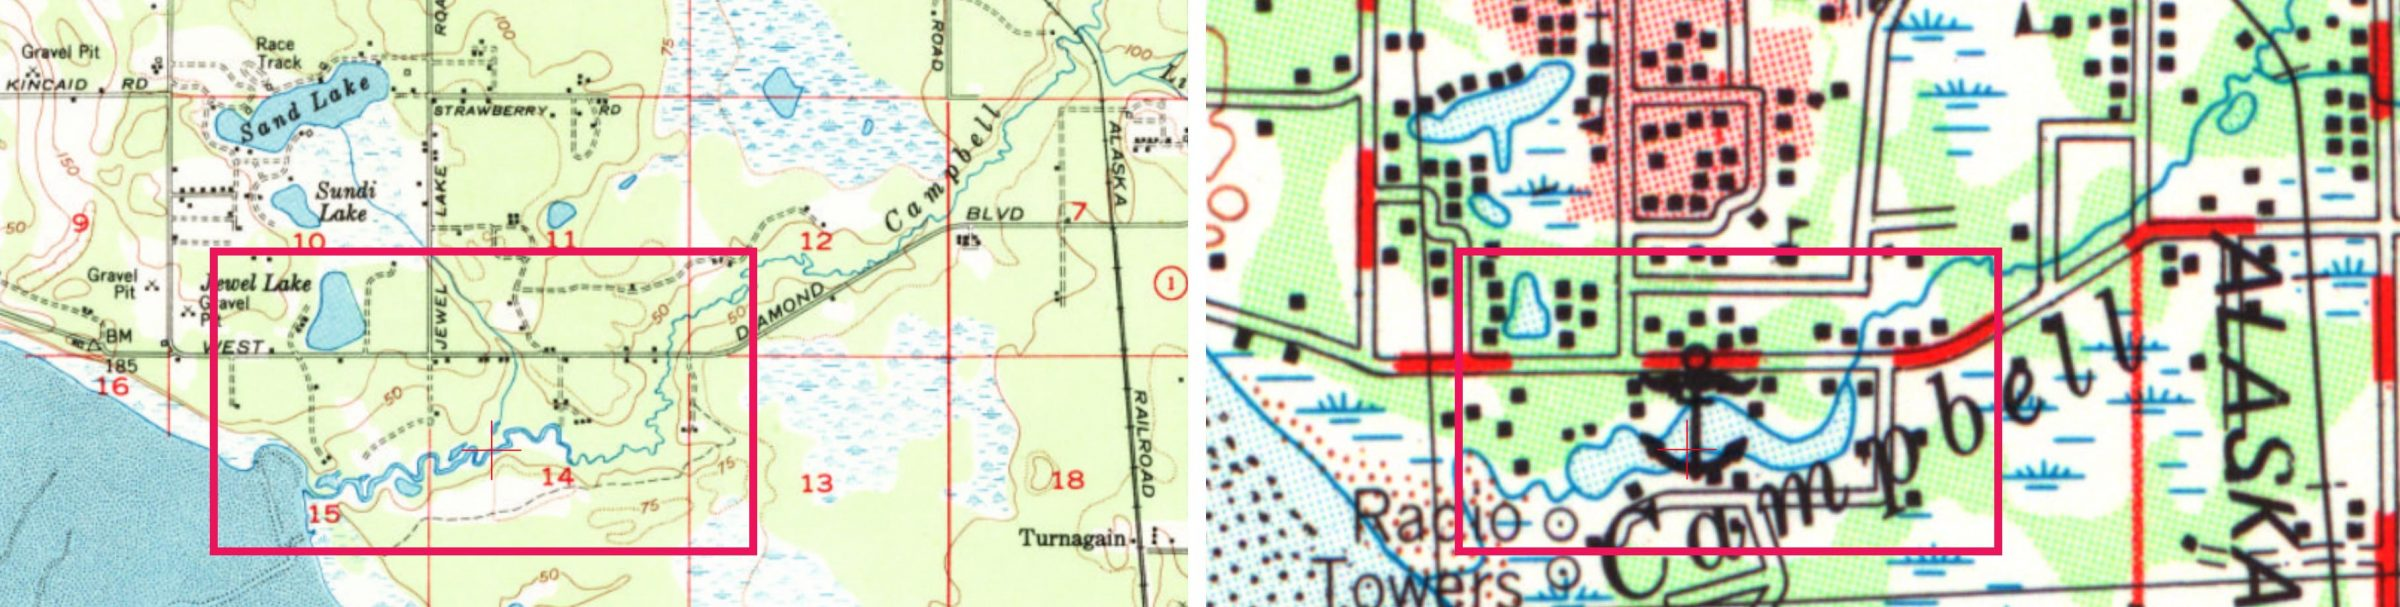 Historical maps of Campbell Lake, showing the creation of the lake